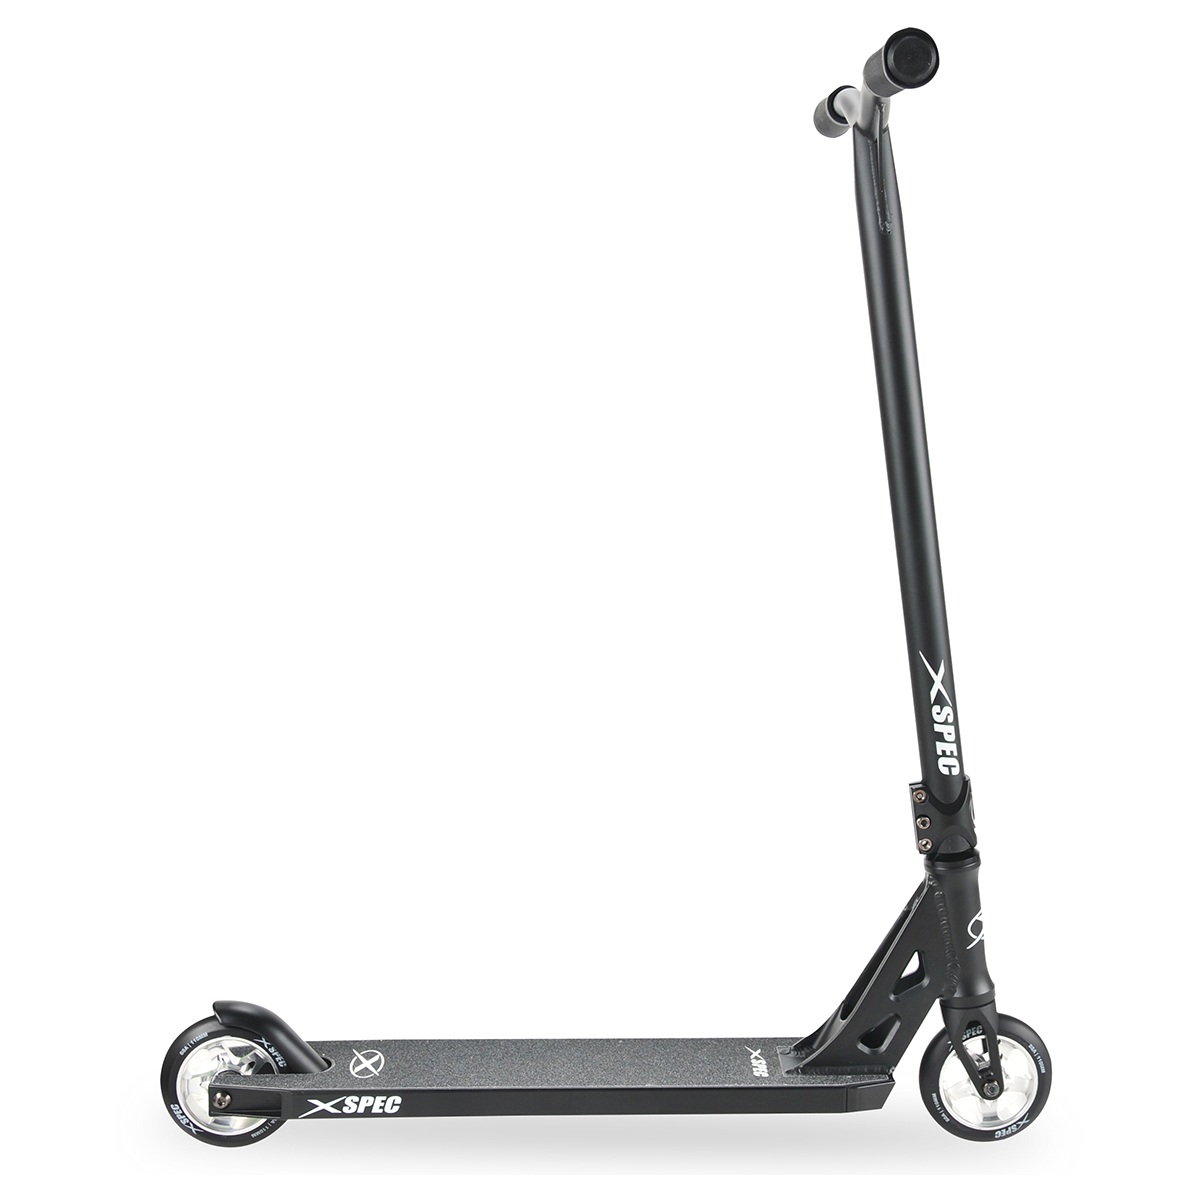 xspec black chrome pro stunt kick scooter trick skatepark. Black Bedroom Furniture Sets. Home Design Ideas